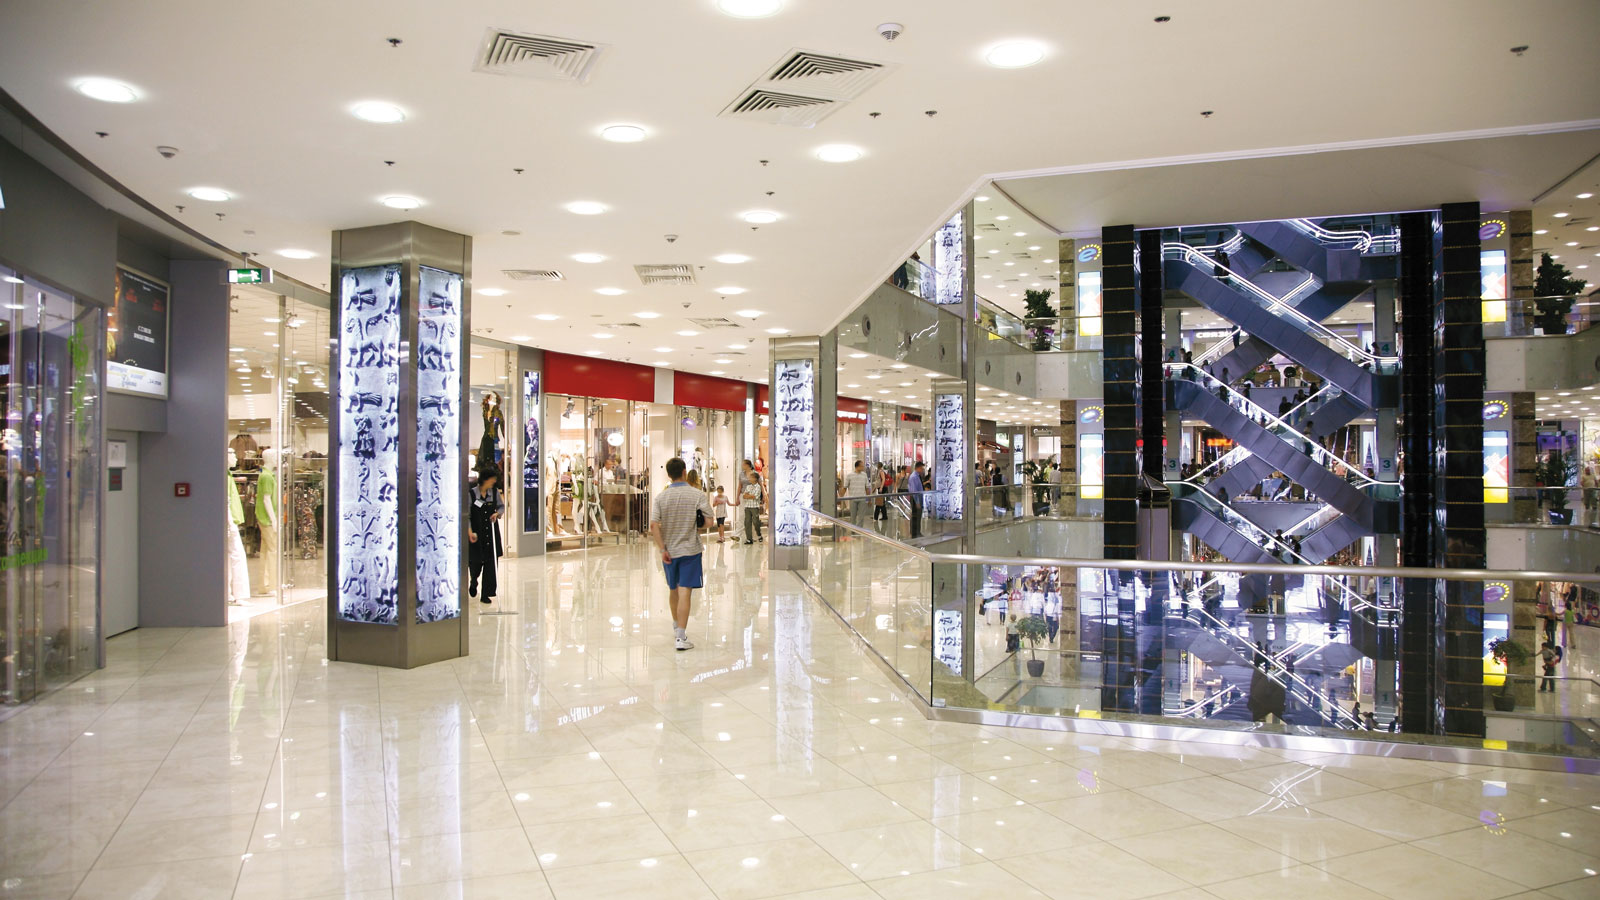 Since 1997 the ARH Group has been delivering Facilities Management and Building Services to the Retail Sector. T:01743 365 365 or E:info@arh-group.co.uk.